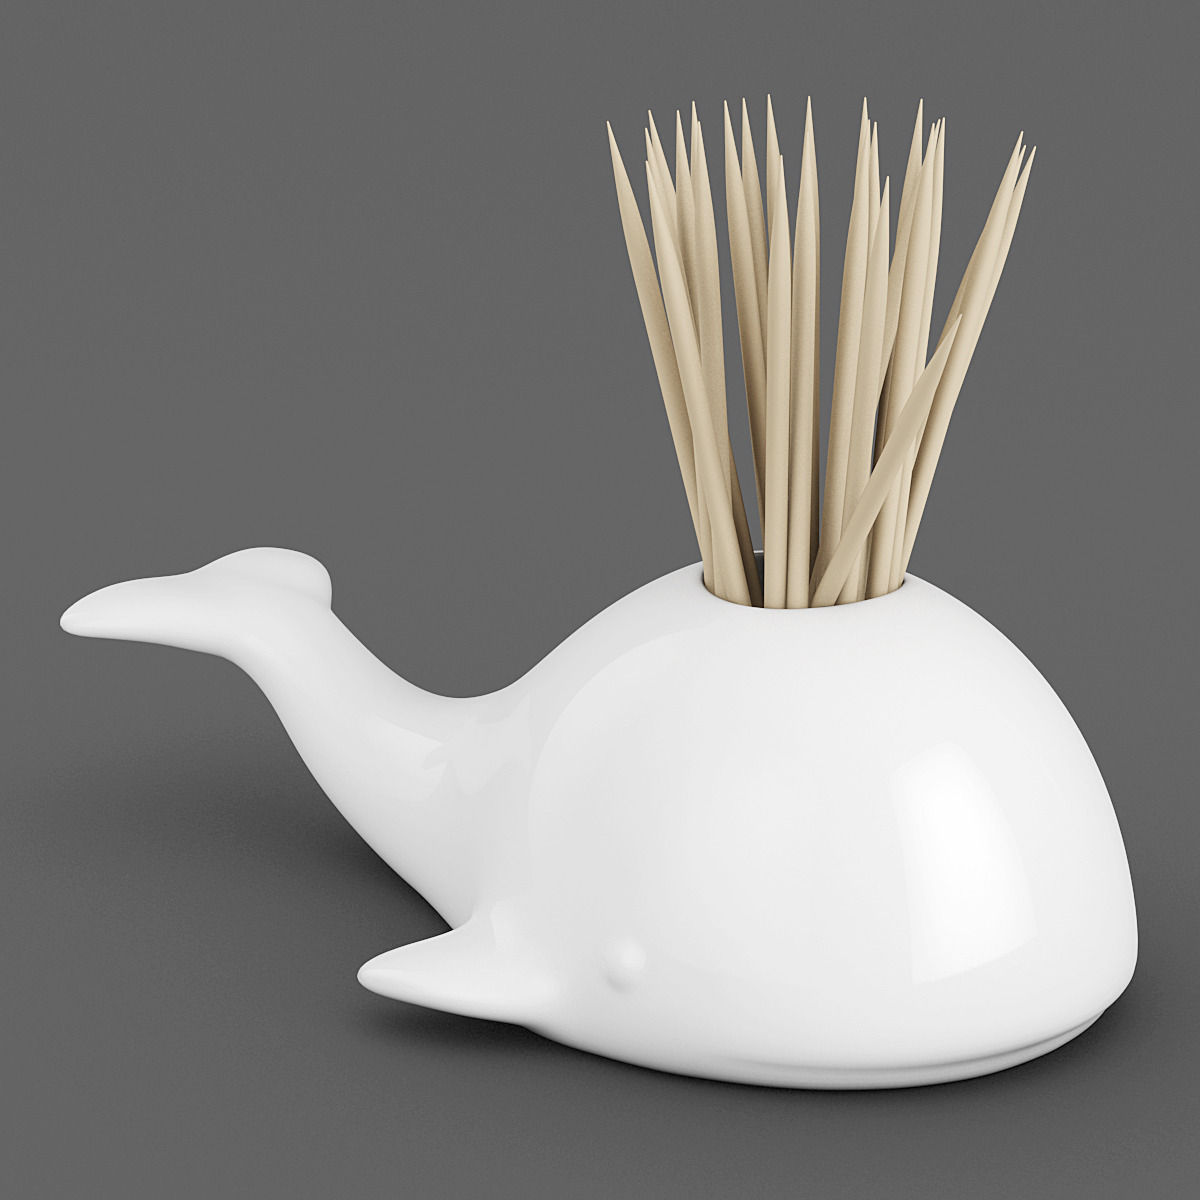 Toothpick Holders Whale Toothpick Holder 01 3d Model 3d Printable Max Obj